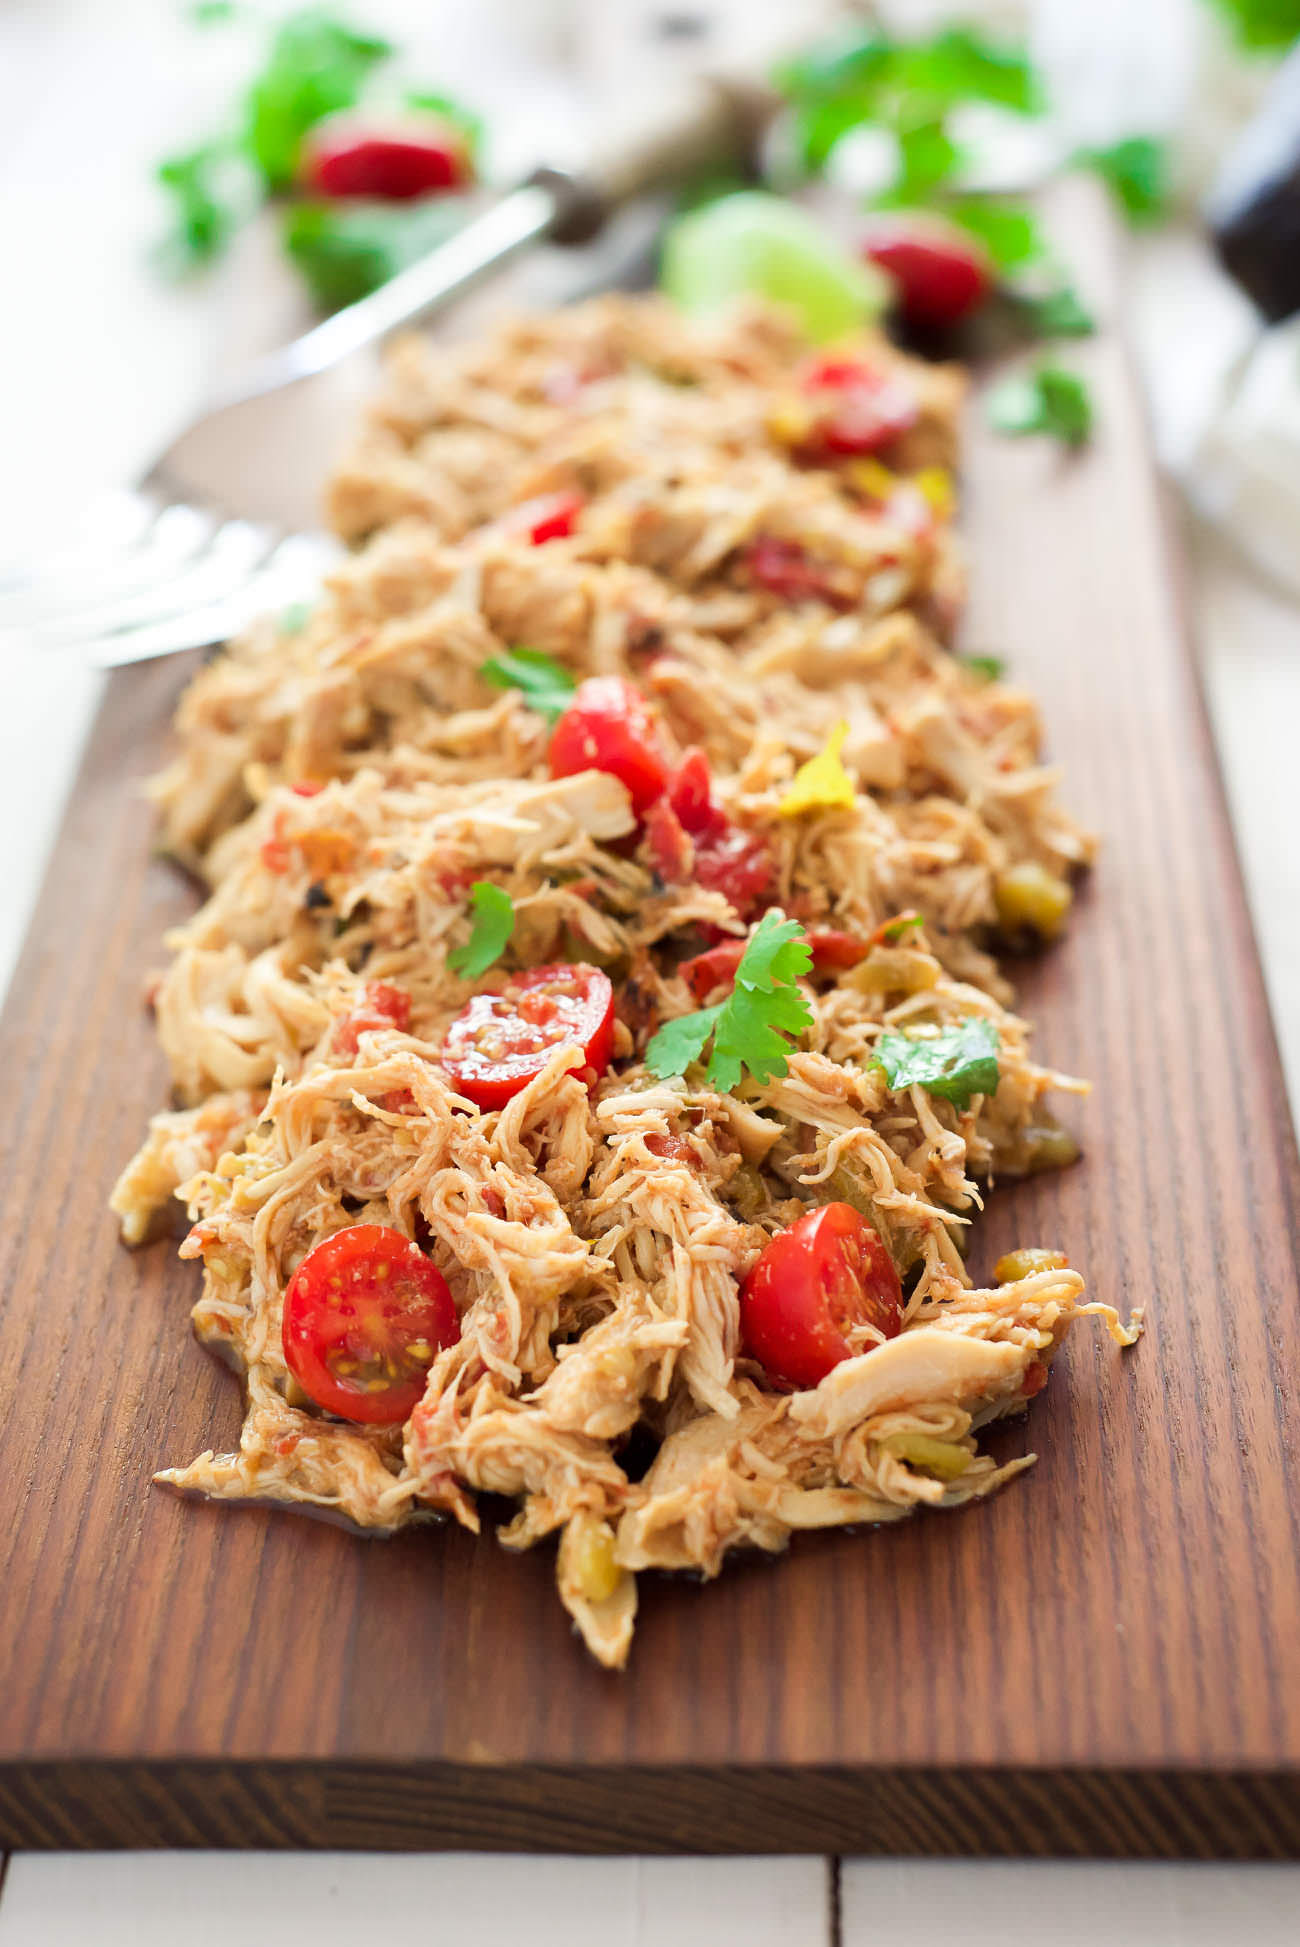 My Favorite Slow Cooker Shredded Mexican Chicken is a time saver and household top pick! Simply throw the chicken in with seasonings and come home to perfectly juicy, shredded chicken! Add to enchiladas, tacos or top salads!